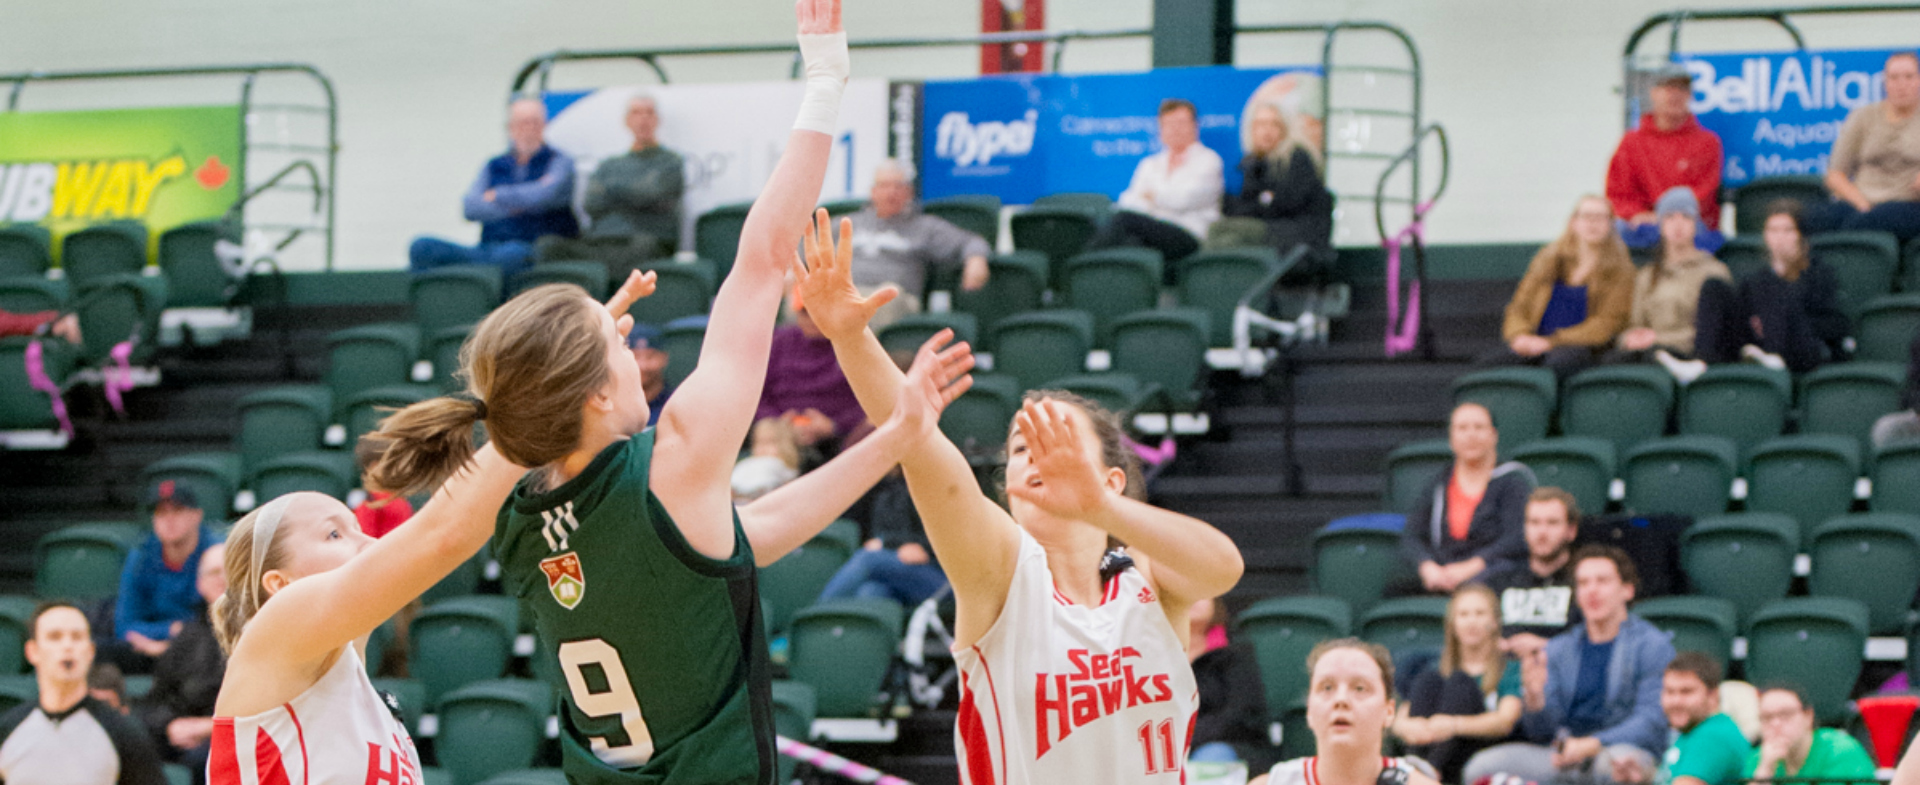 Sea-Hawks survive late rally, defeat Panthers